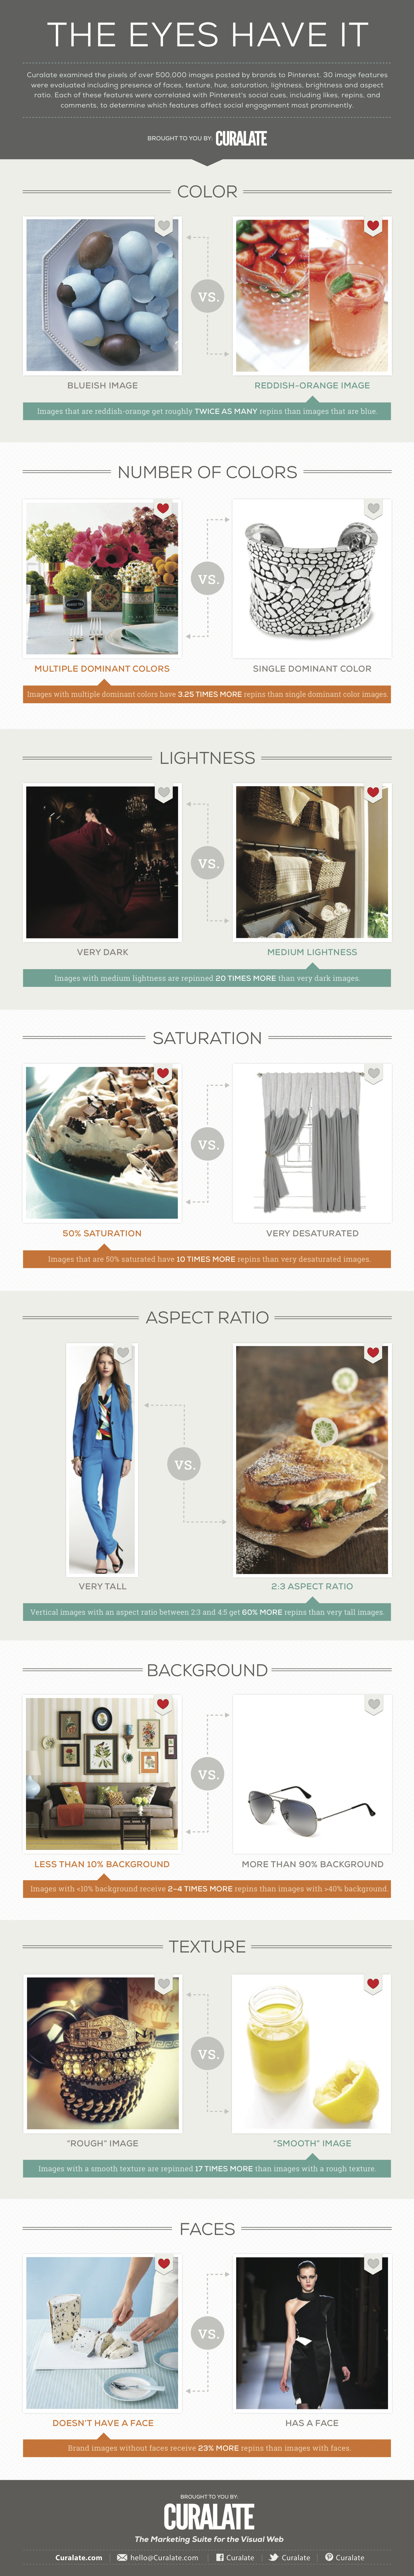 The-Eyes-Have-It-Curalate-Infographic-copy